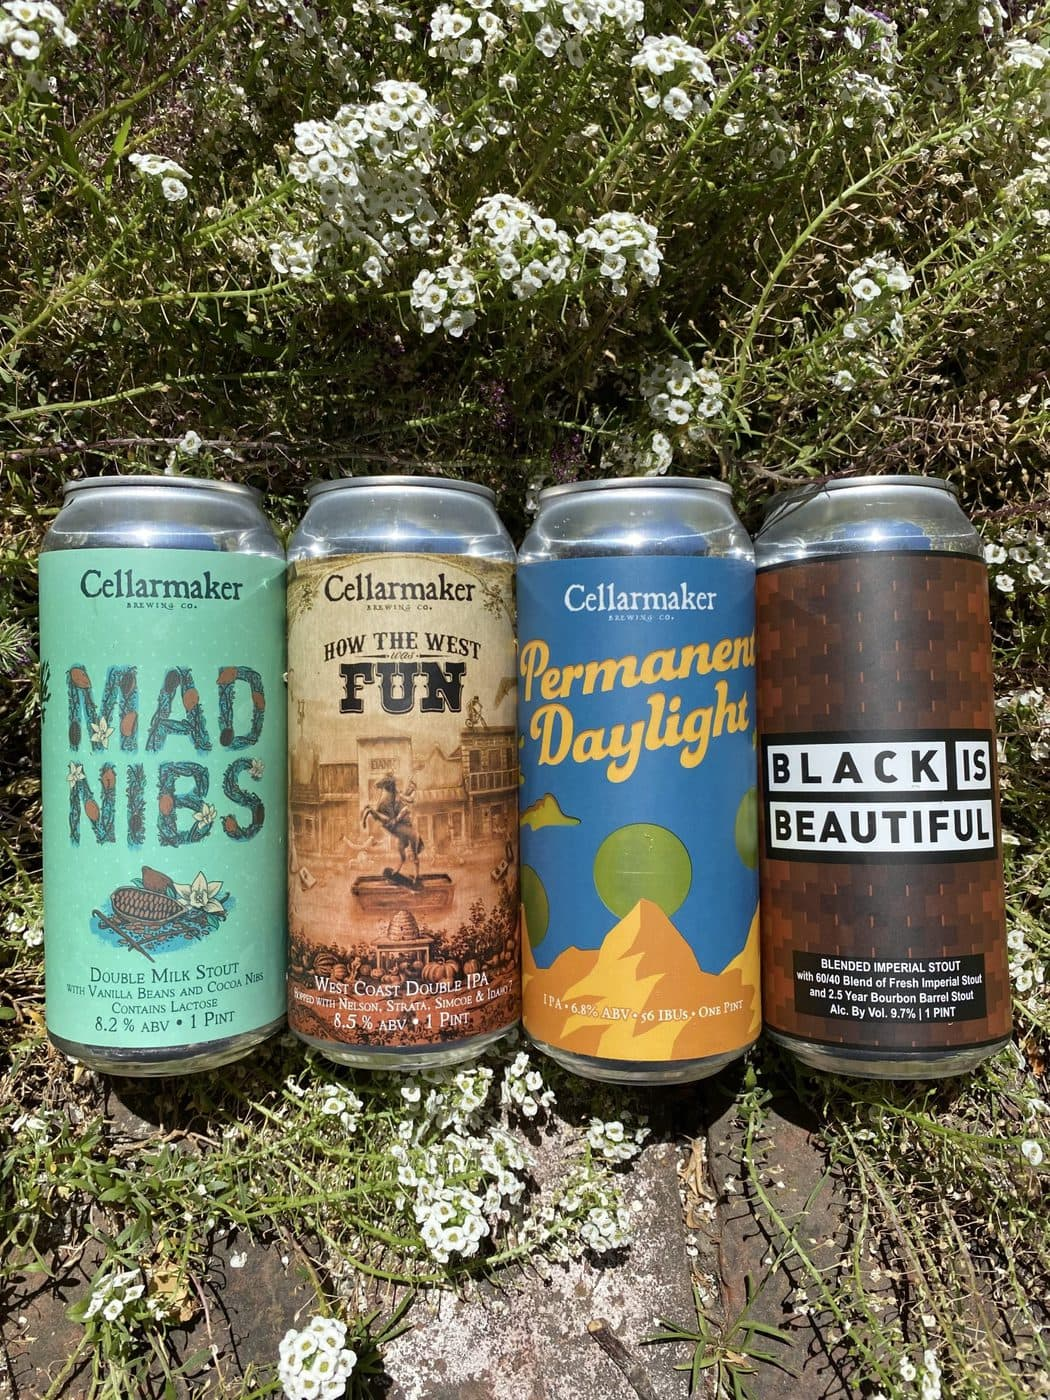 16 CANS – 4X4 MIX – 4 How The West Was Fun DIPA, 4 Permanent Daylight IPA, 4 Black Is Beautiful Blended Imperial Stout And 4 Mad Nibs Double Milk Stout  – Shipping Out Tuesday 6/22 For Next Day Delivery*